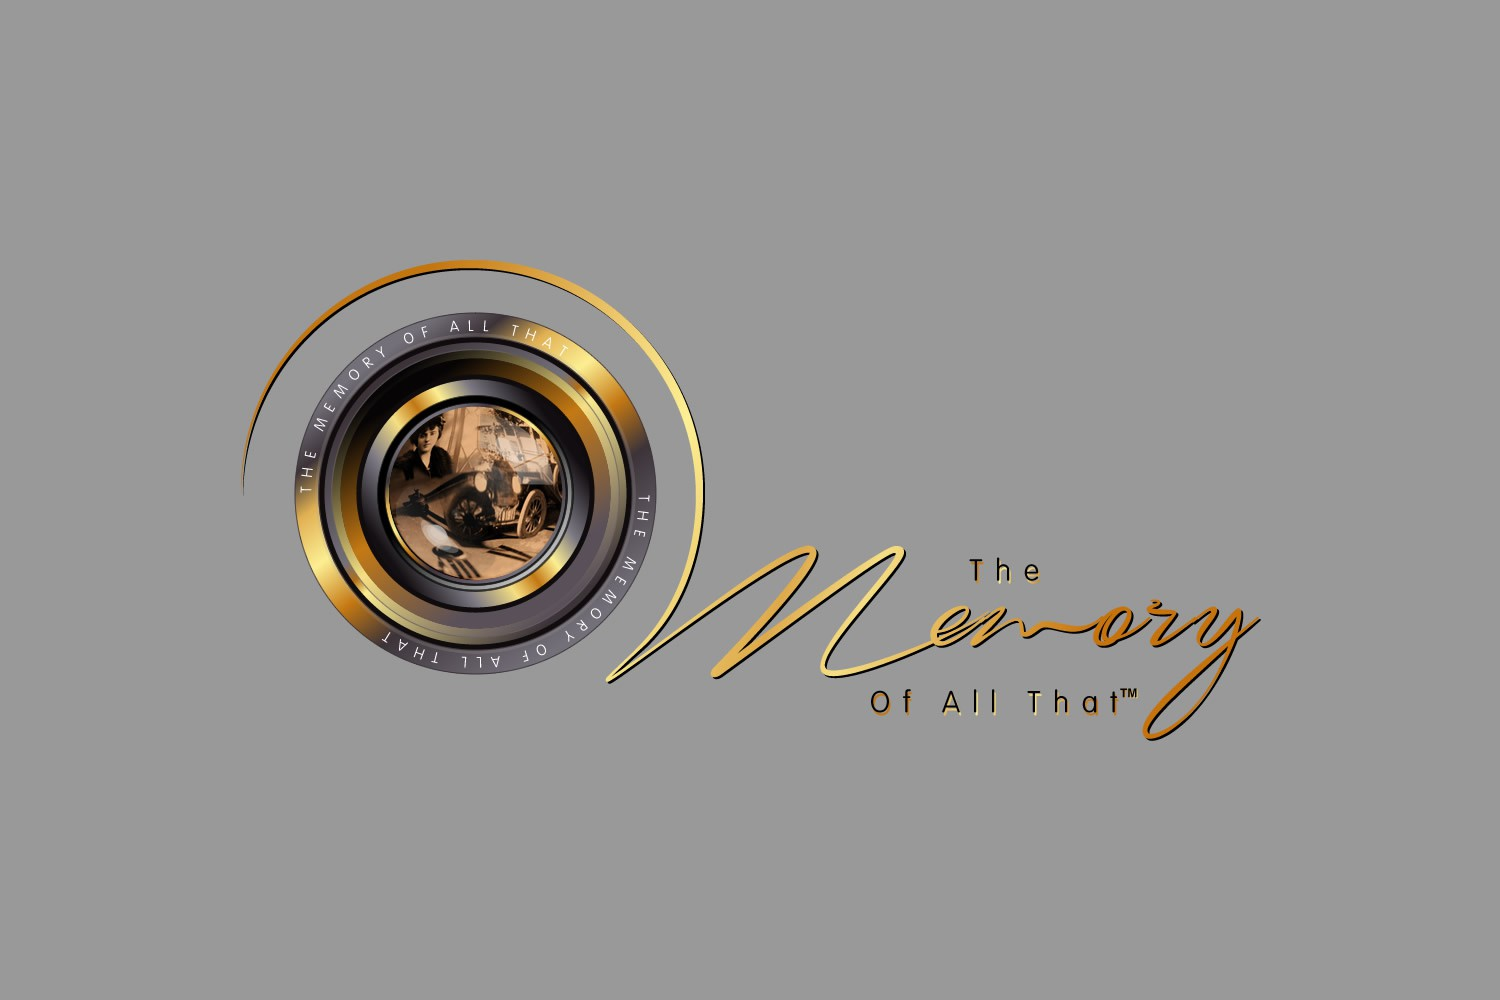 """create a vintage or combination vintage/modern logo for """"The Memory Of All That"""""""